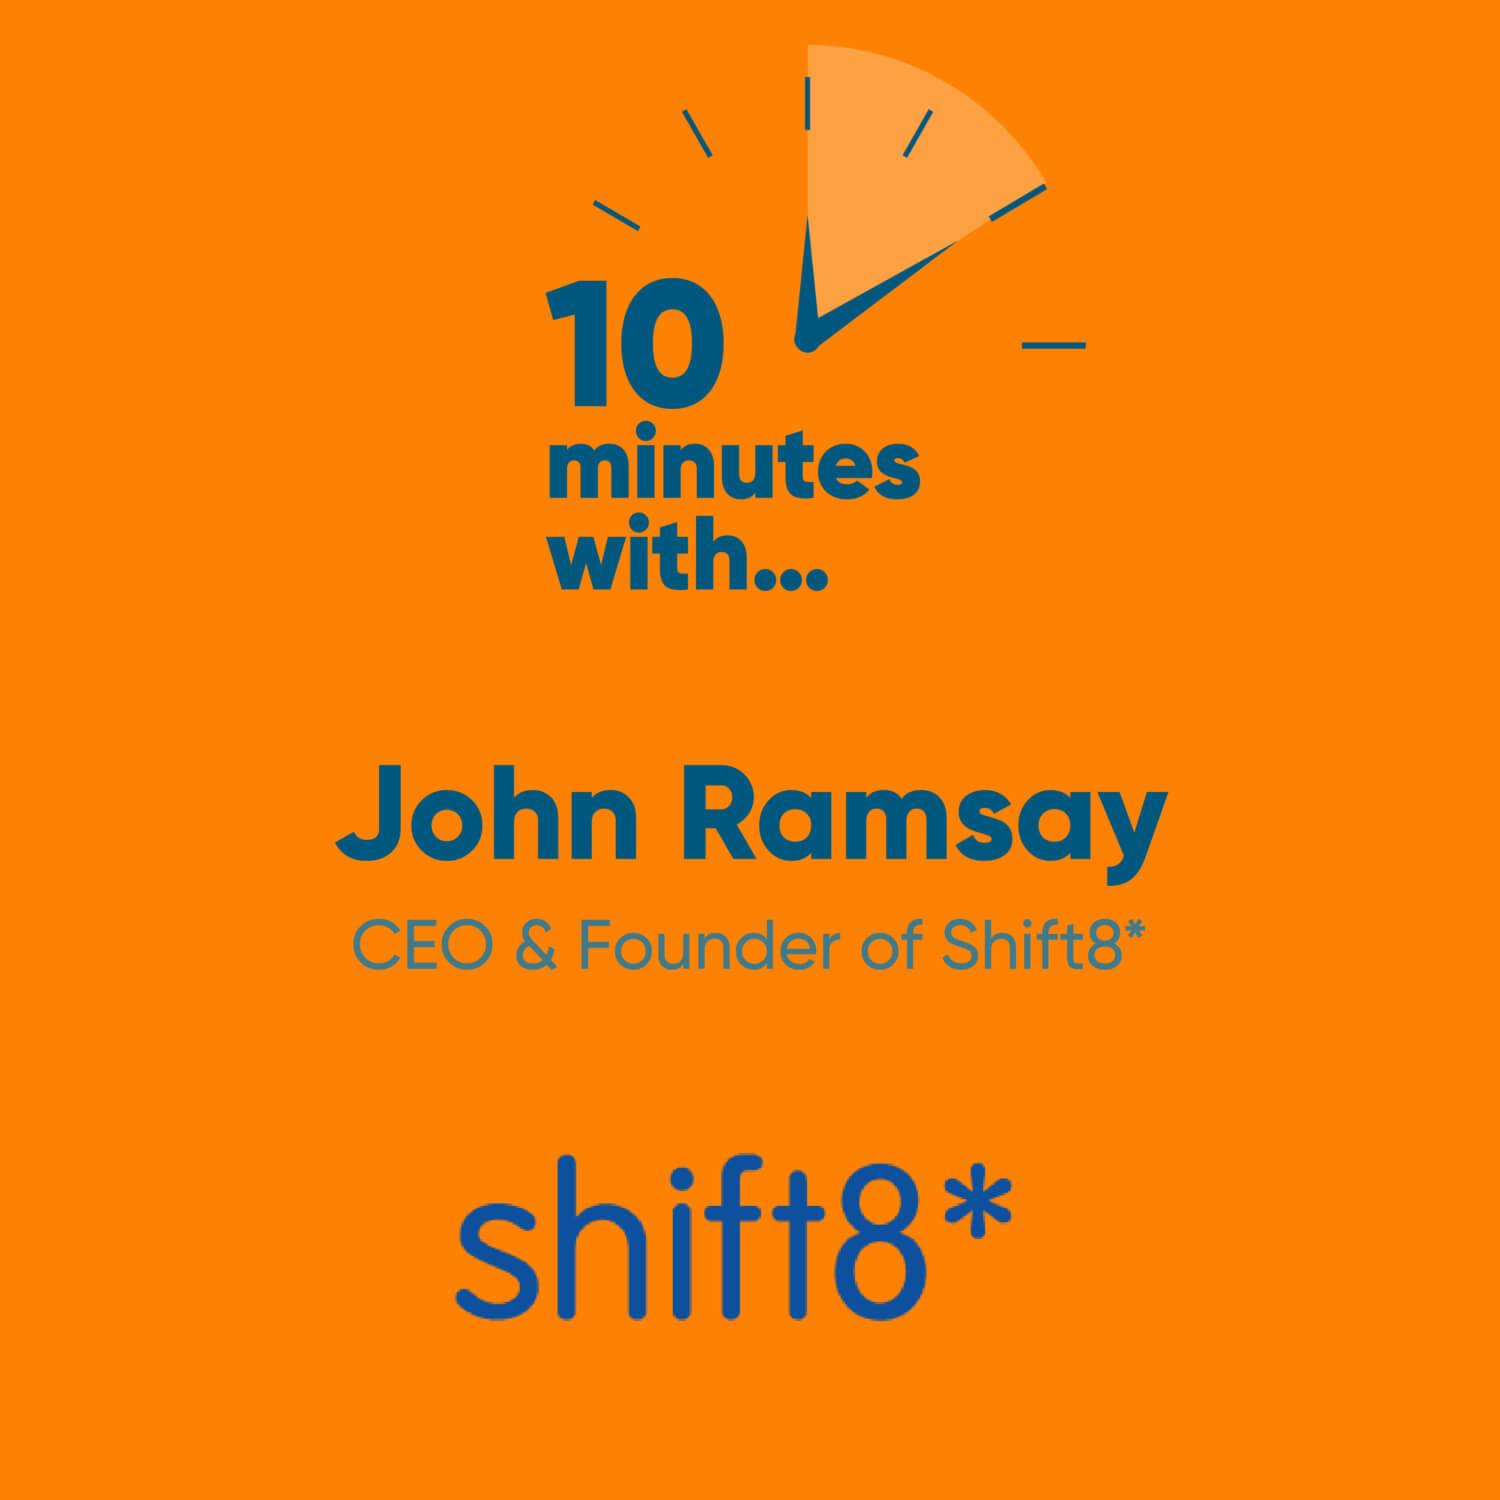 10 minutes with...John Ramsay CEO & Founder of Shift8*